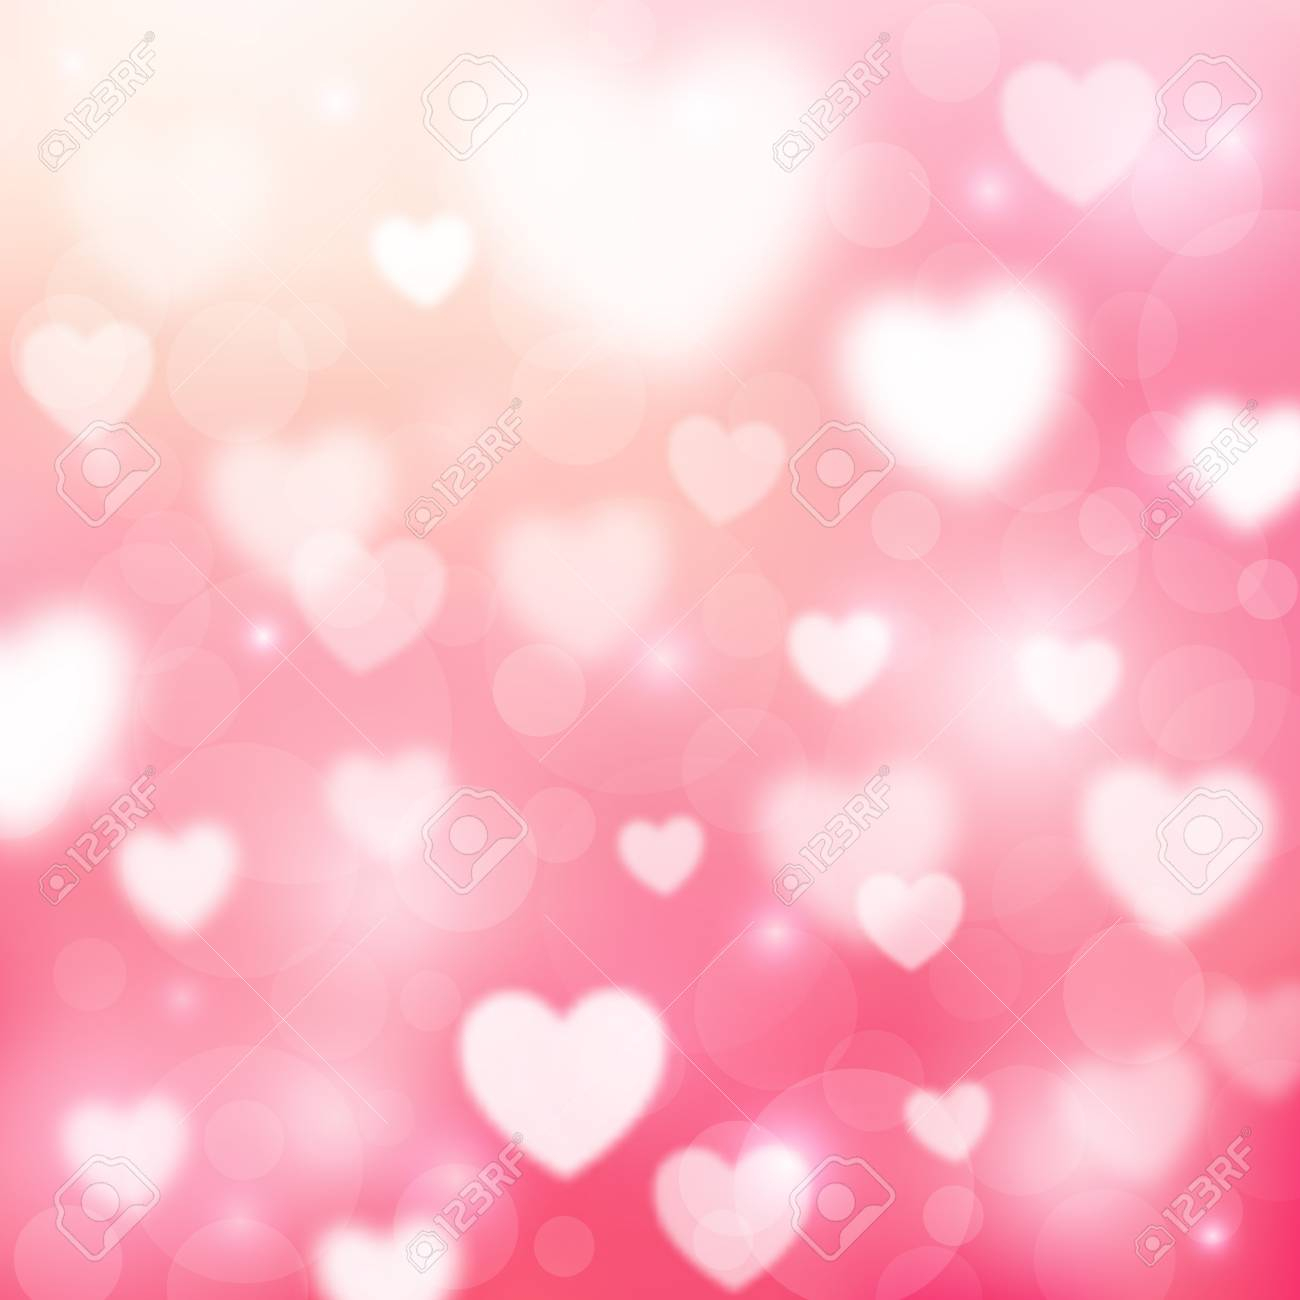 abstract romantic pink background with hearts and bokeh lights st valentines day wallpaper blurred s